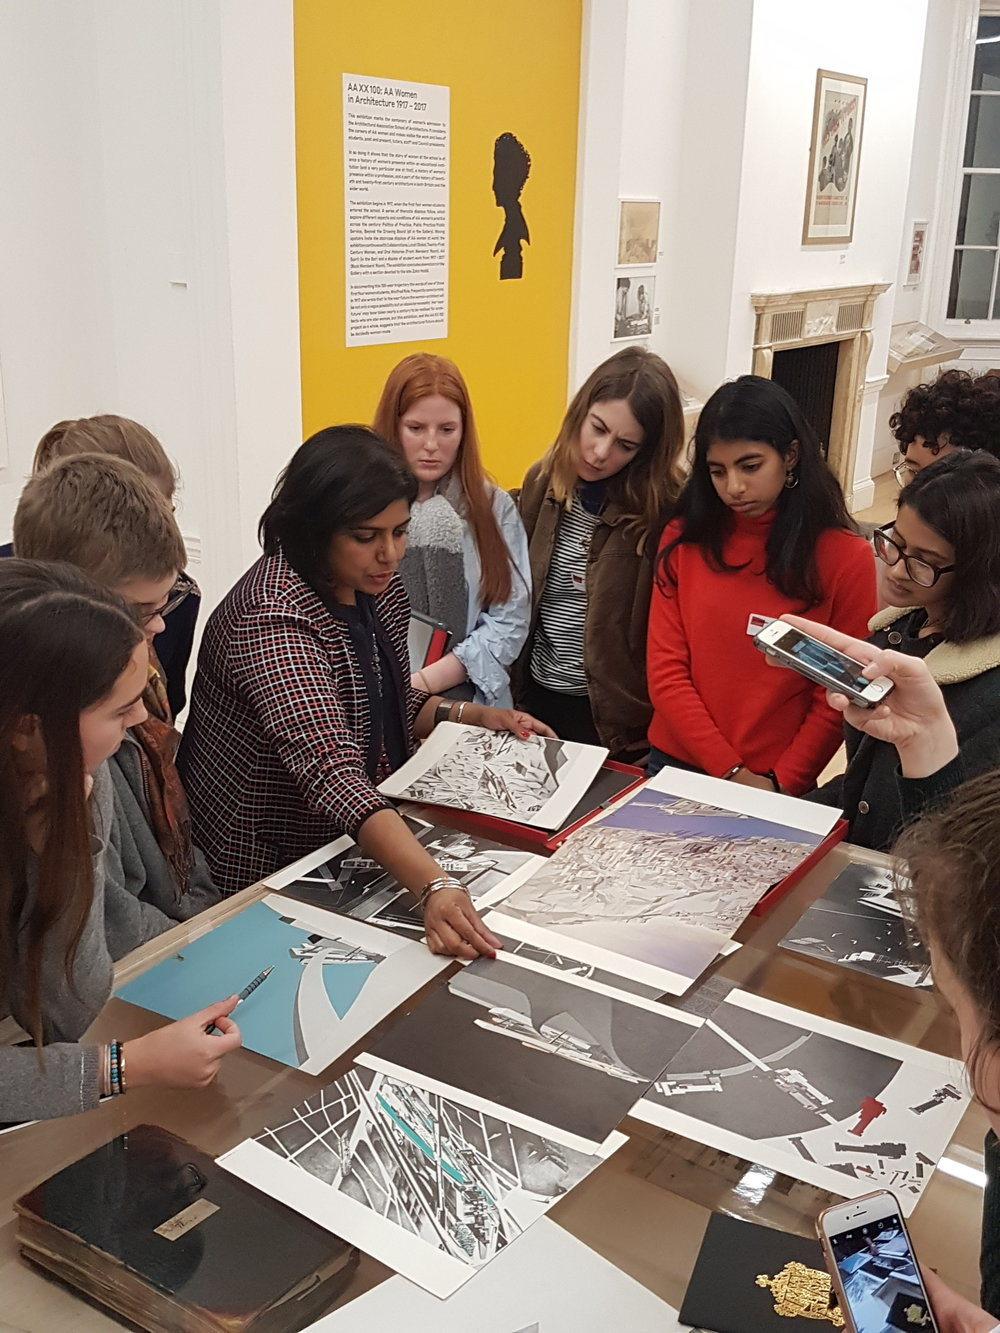 Manijeh Verghese, Head of Lectures & Public Programme Curator at the AA, giving a tour of AA XX 100 exhibition